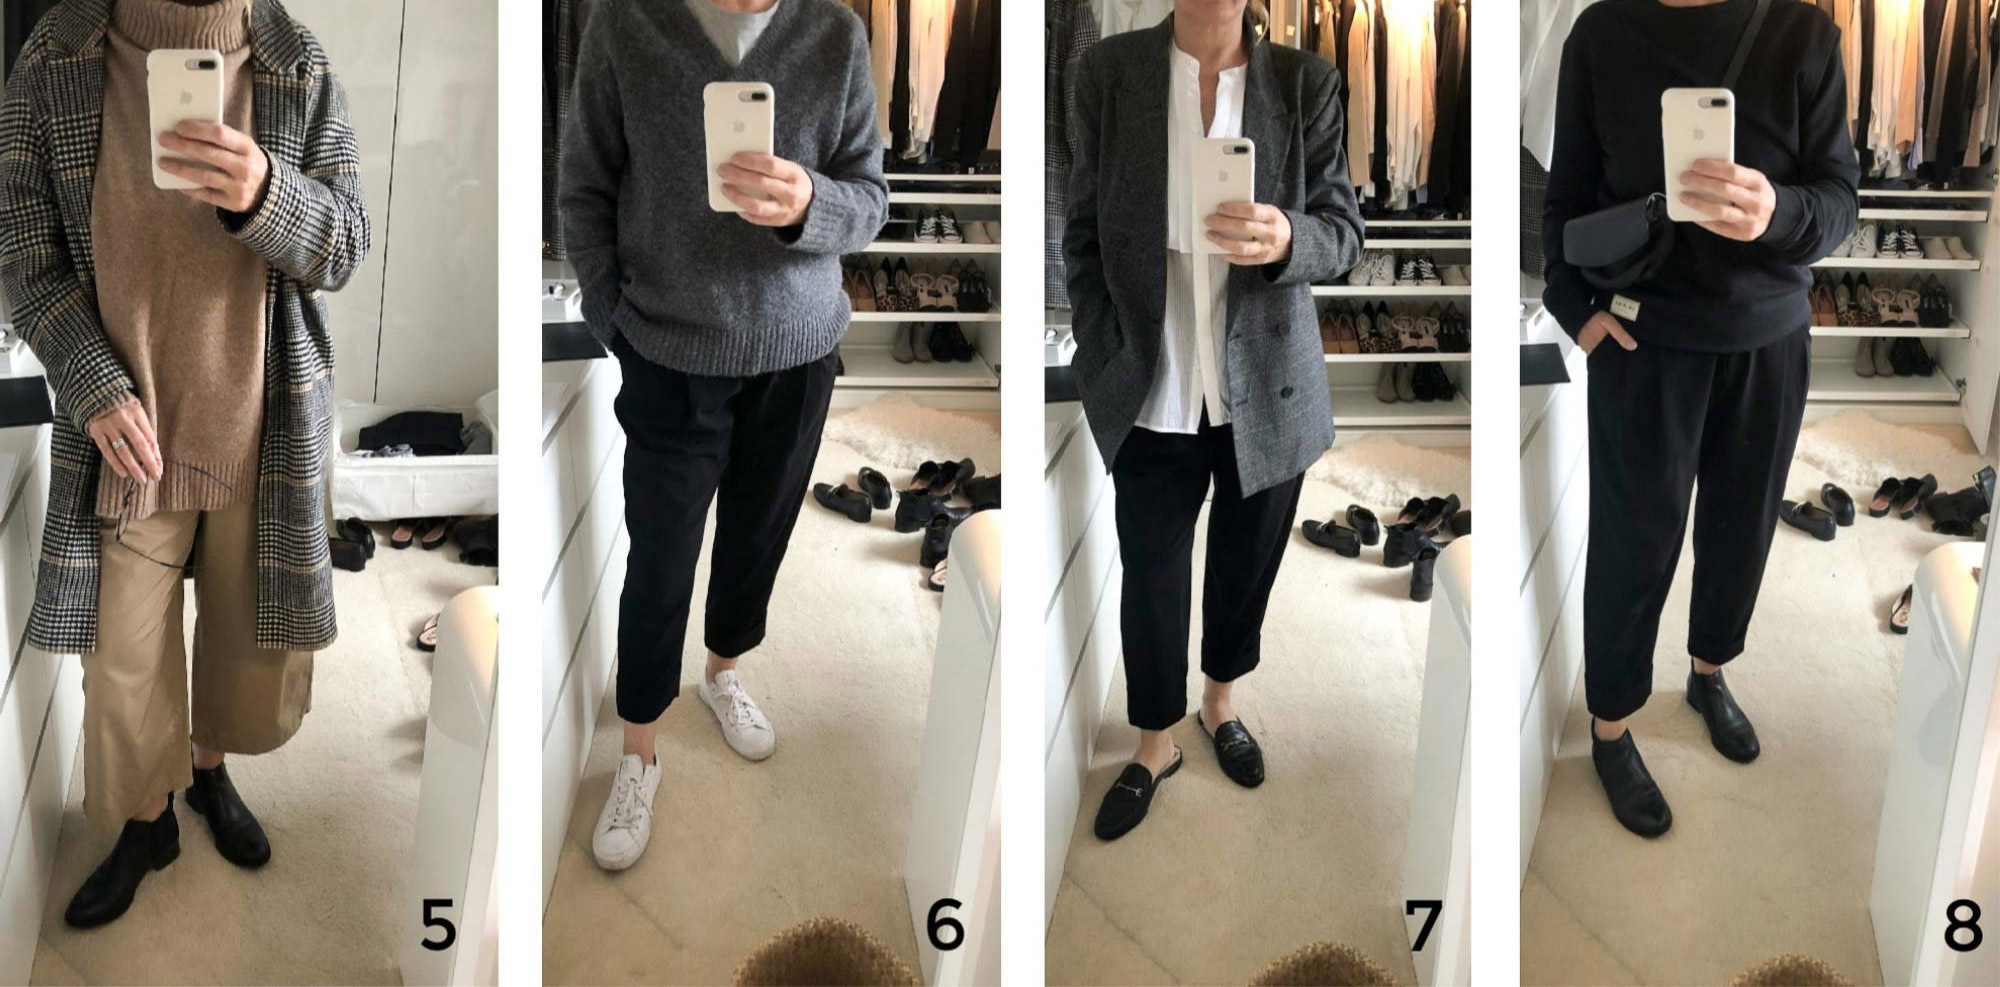 outfits-five-to-eight.jpg